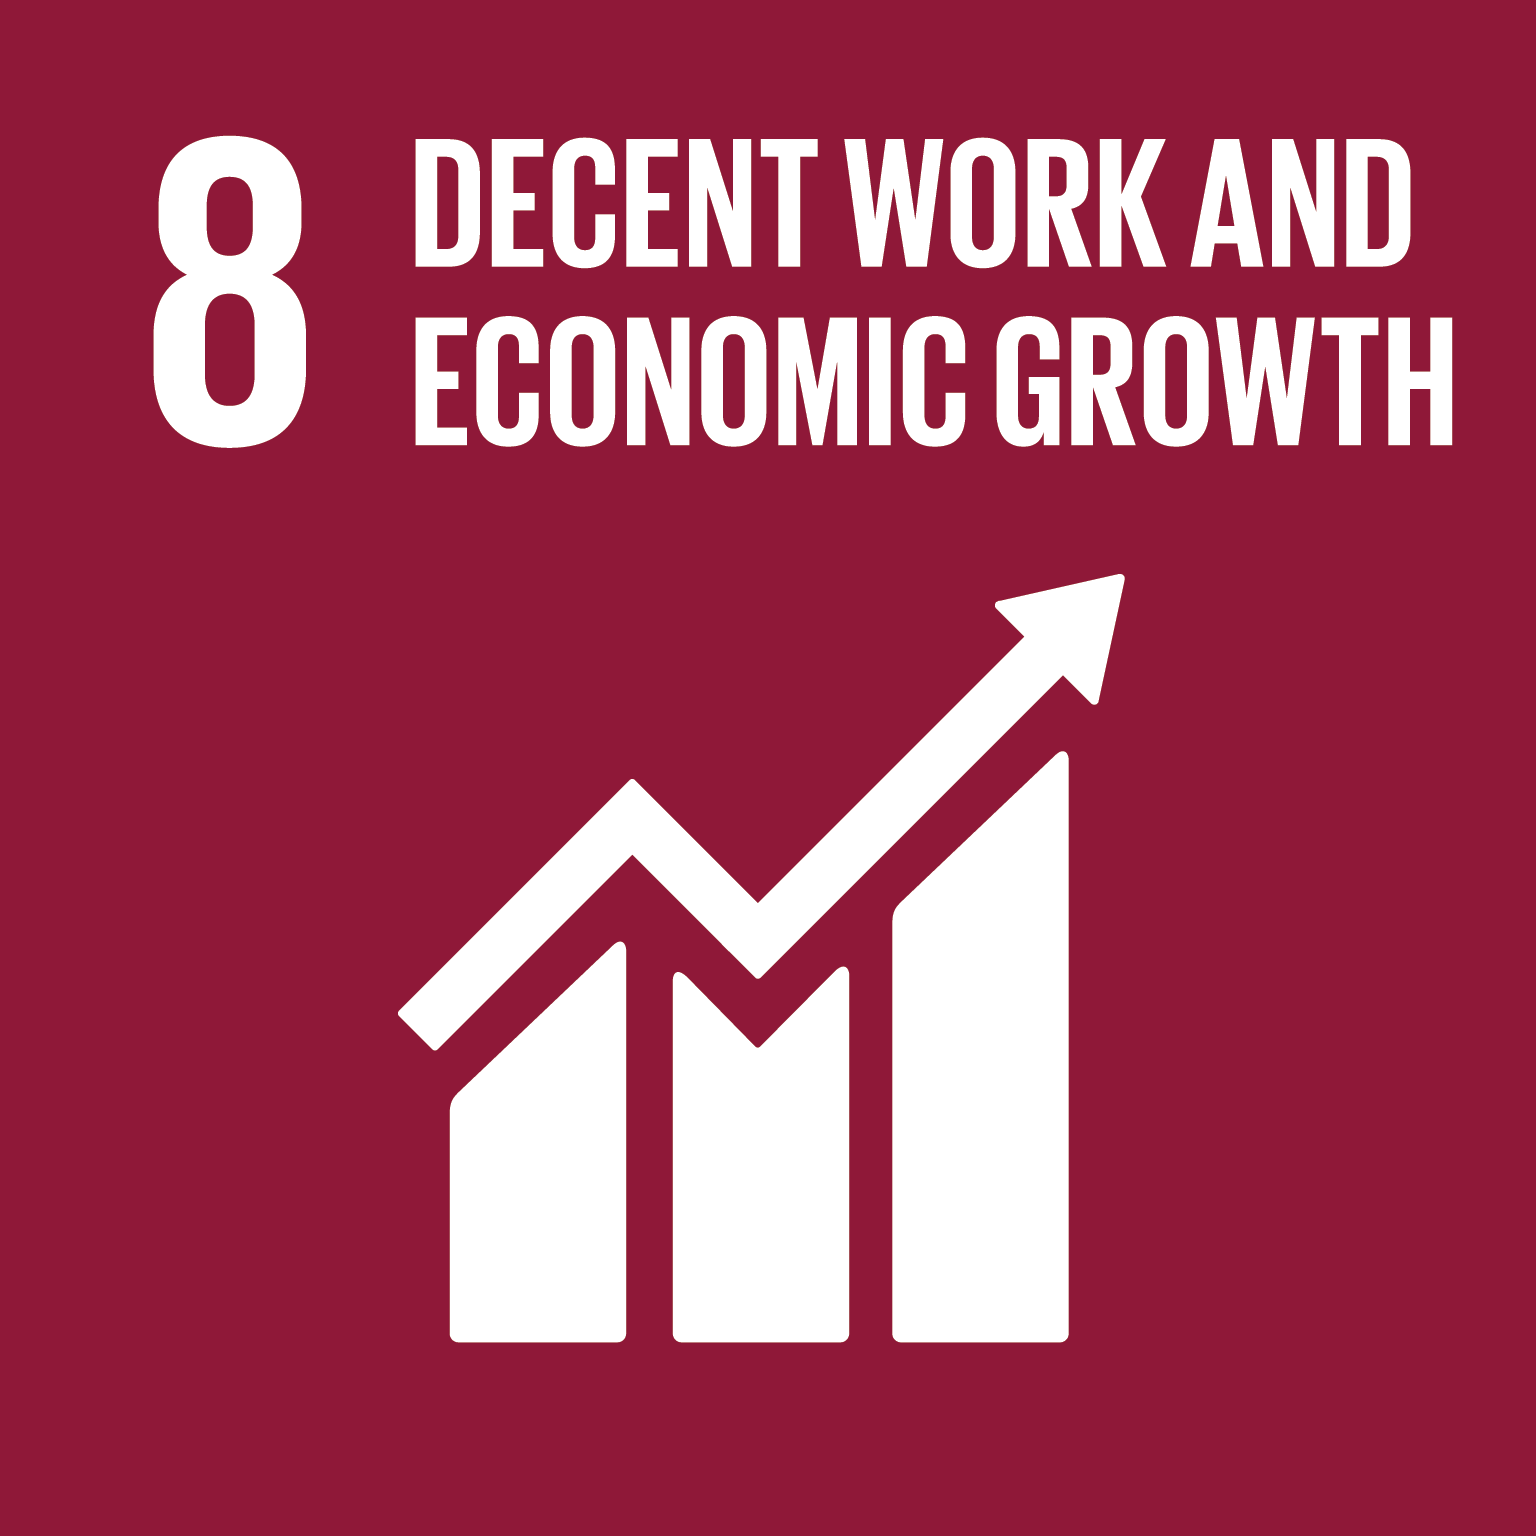 SDG Goal 8 'Decent work and economic growth' © UN